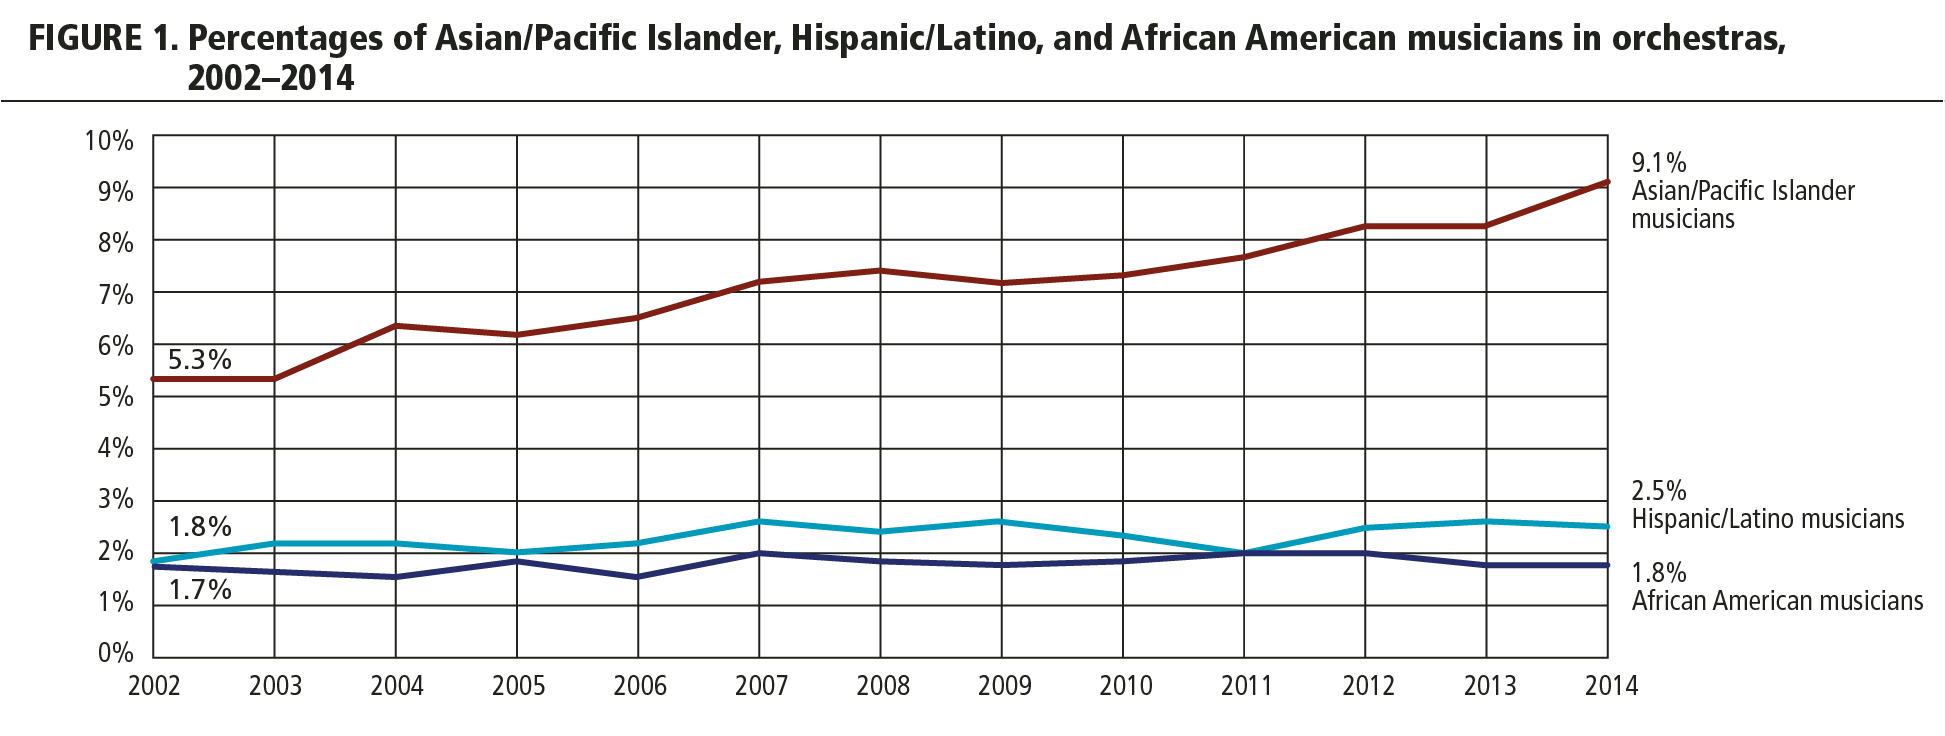 FIGURE 1. Percentage of Asian/Pacific Islander, Hispanic/Latino, and African American musicians in orchestras, 2002-2014